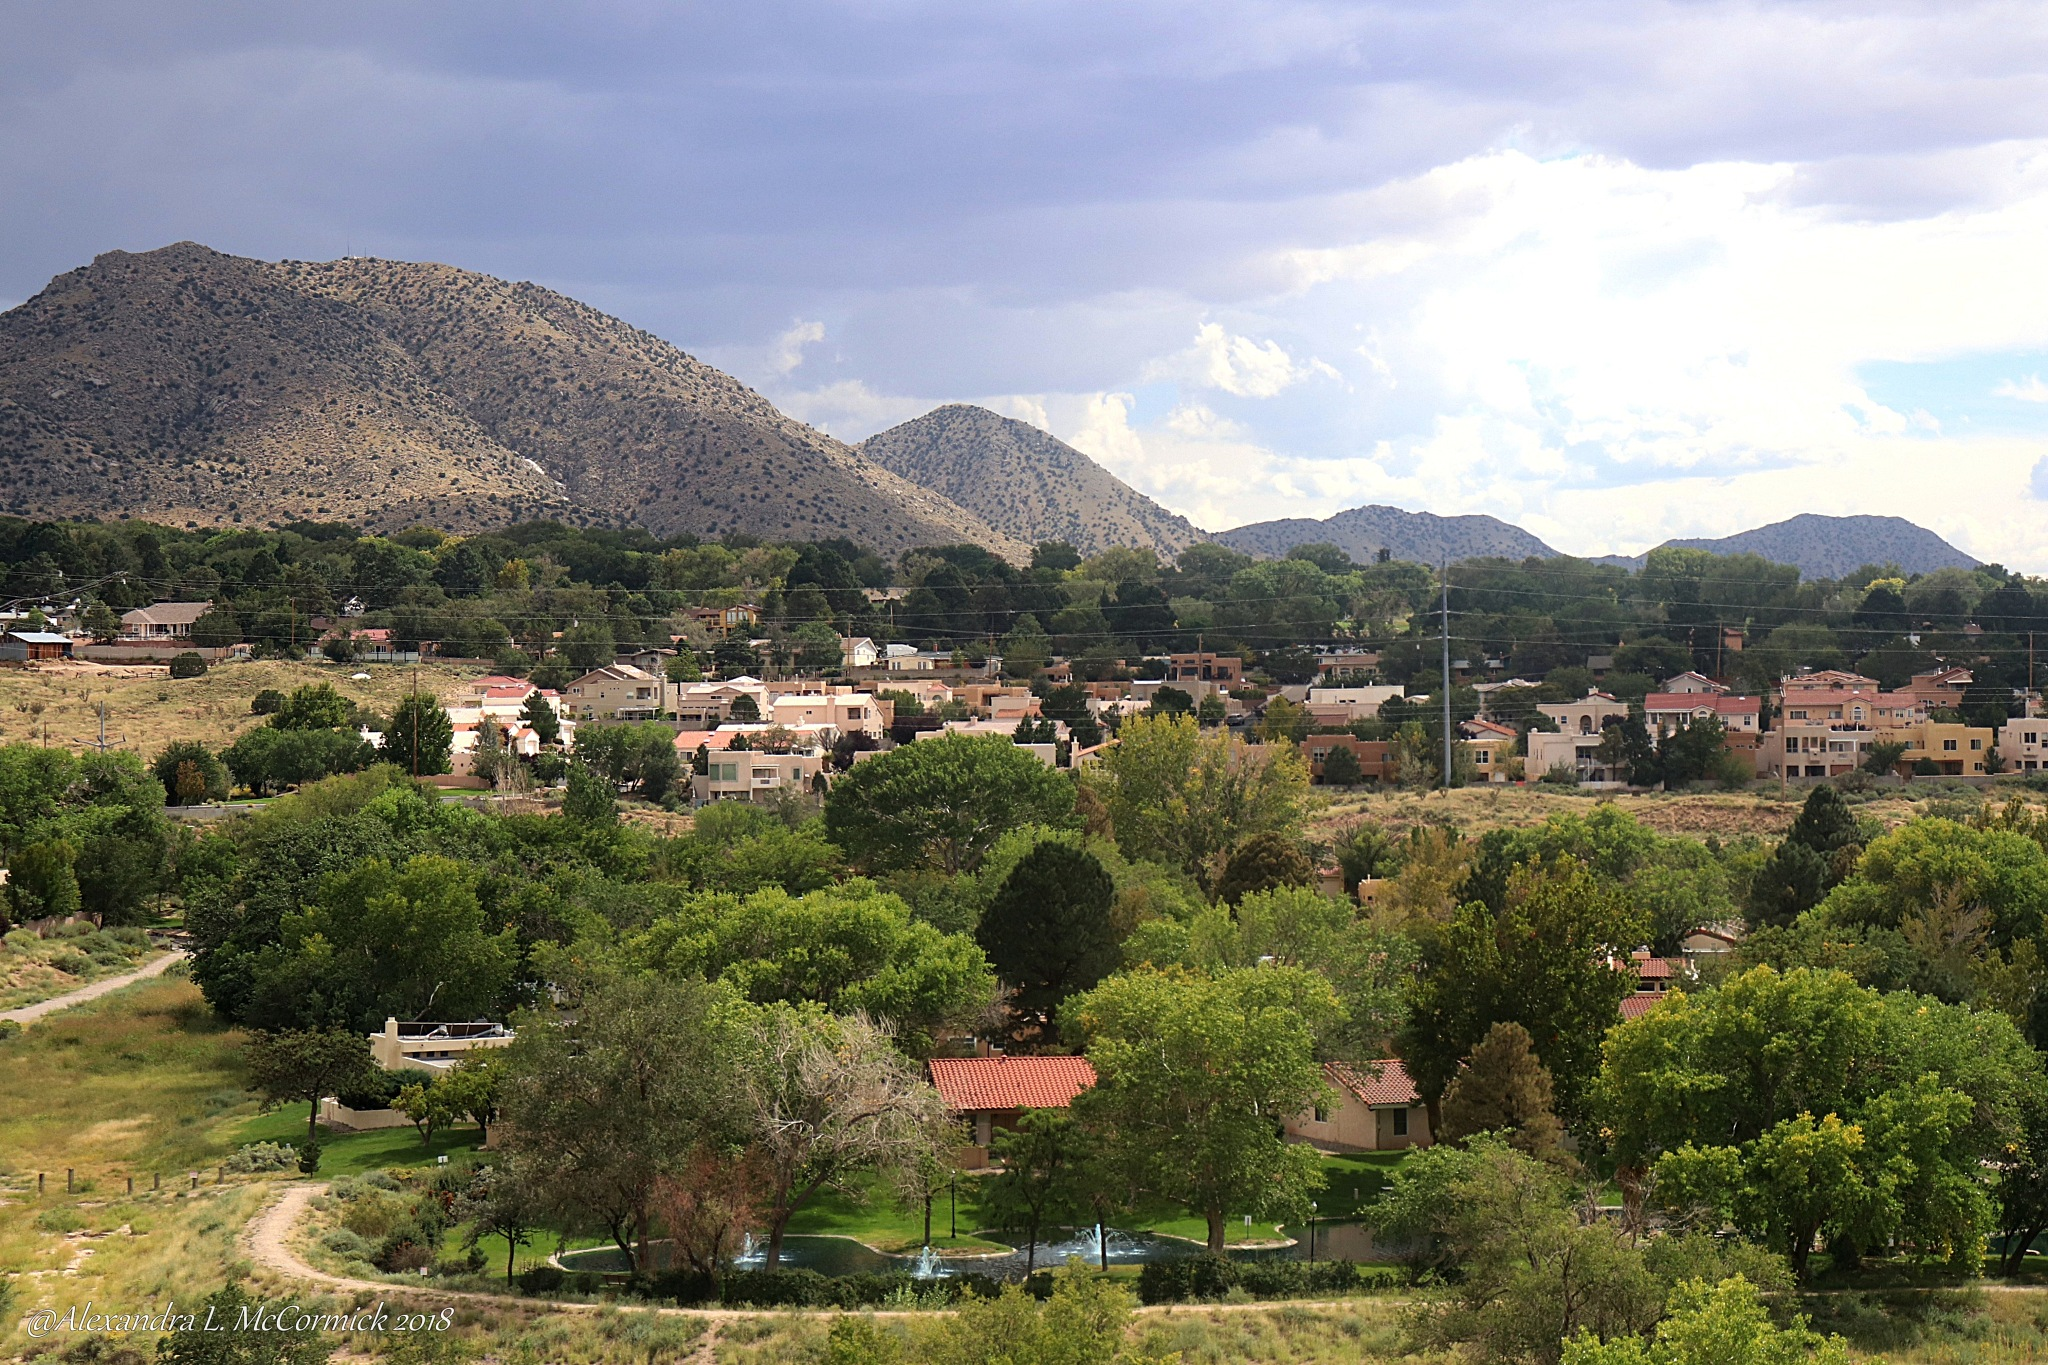 Mountain View Of New Mexico by Alexandra L. McCormick